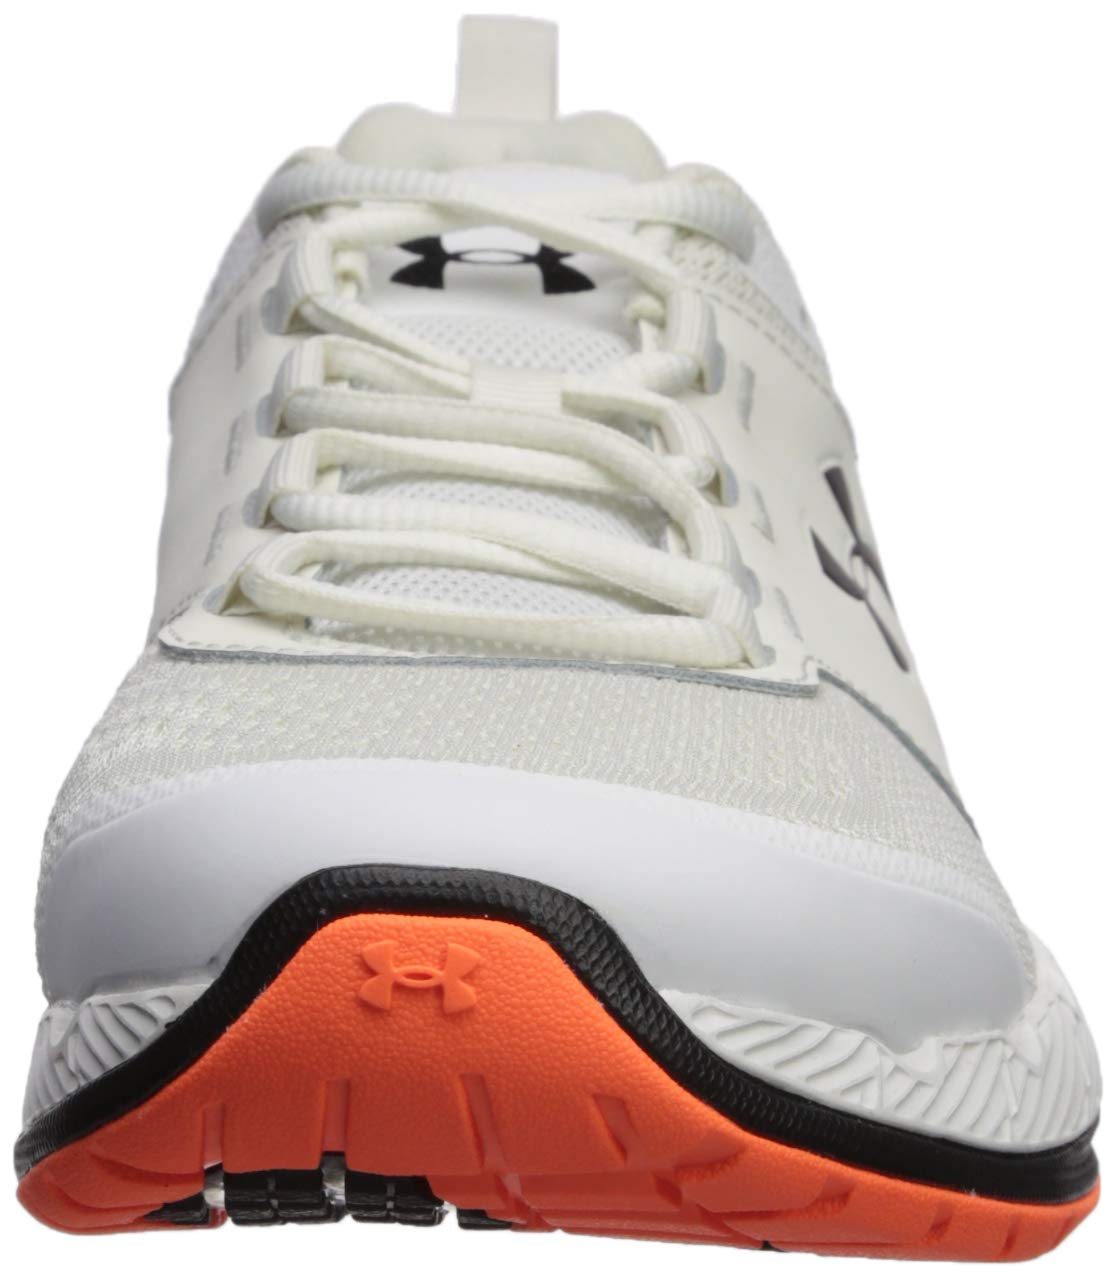 Under Armour Men's Commit TR EX Sneaker, Onyx White (108)/Black, 7 M US by Under Armour (Image #4)